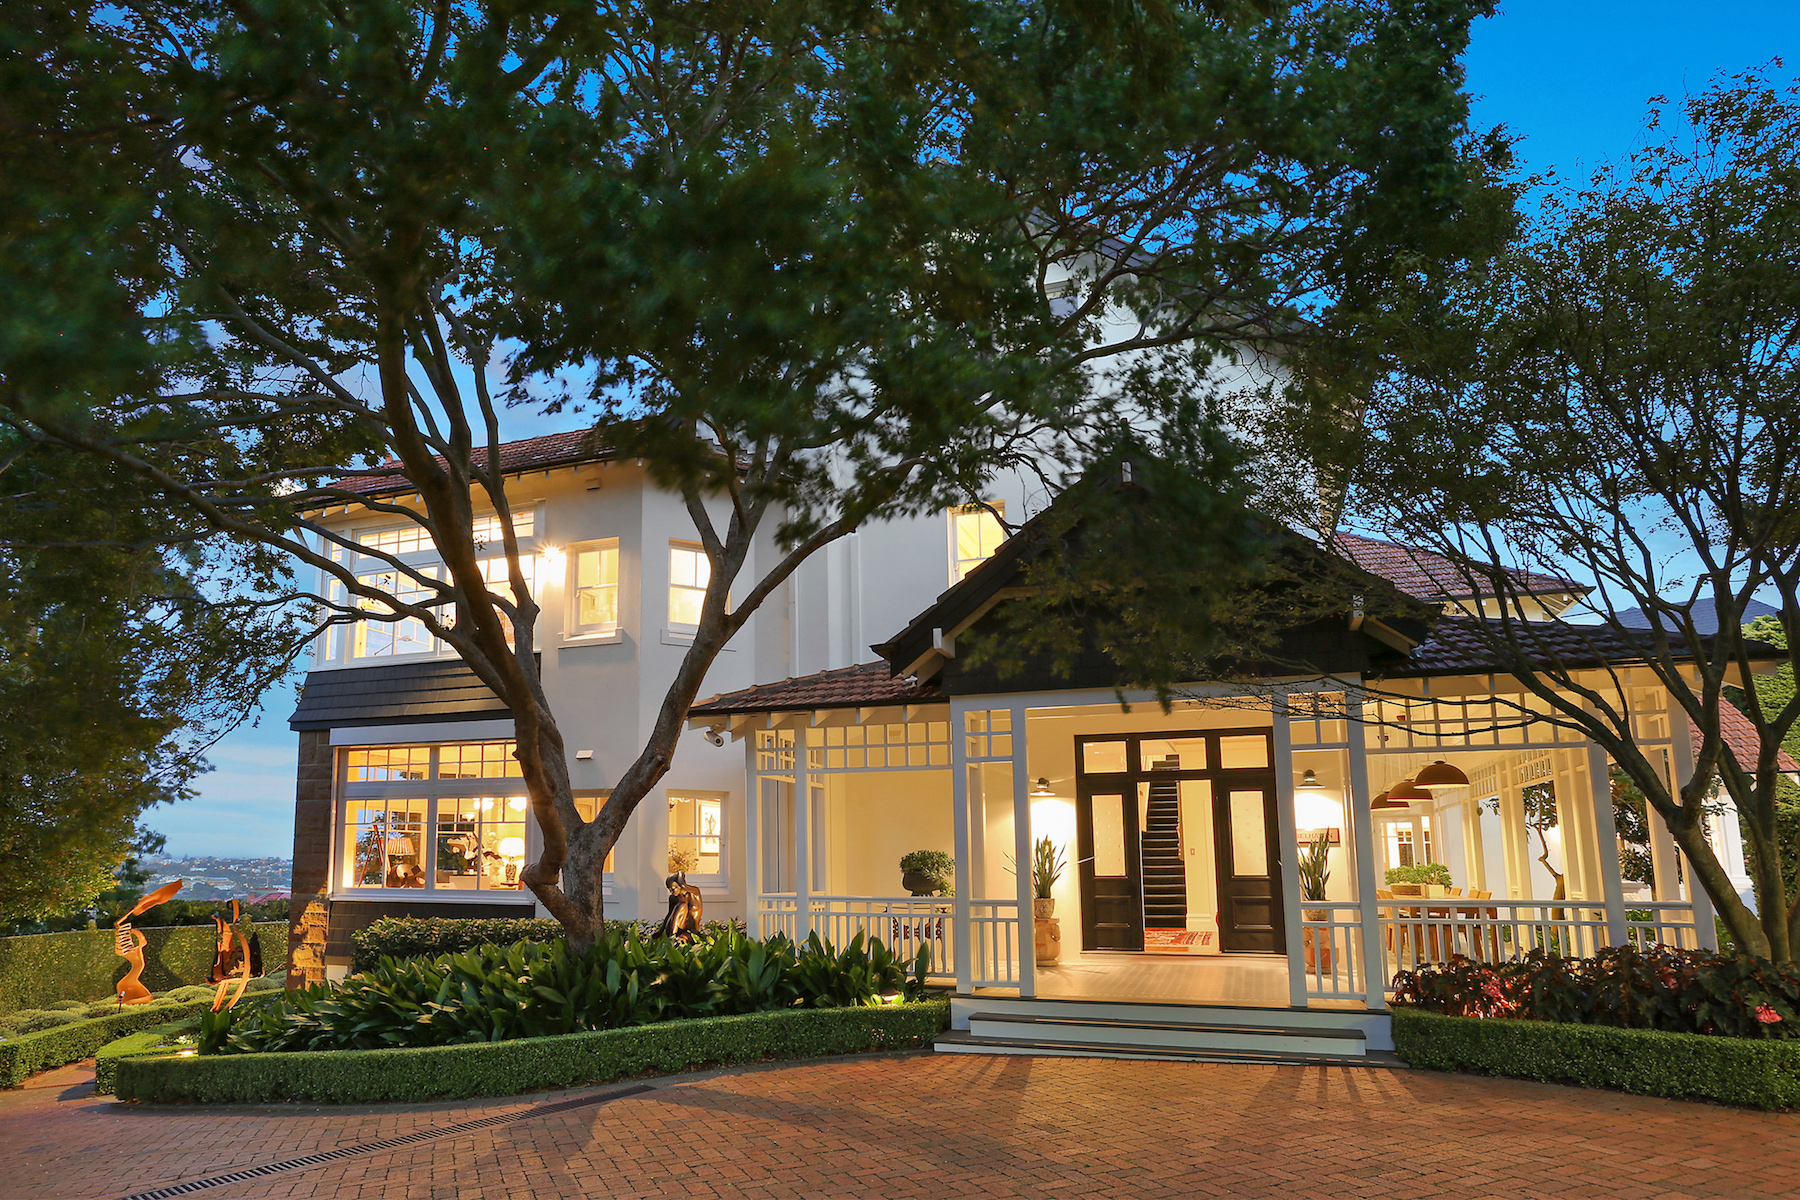 Other Residential for Sale at Belhaven 85 Victoria Road Sydney, New South Wales, BELLEVUE HIL Australia